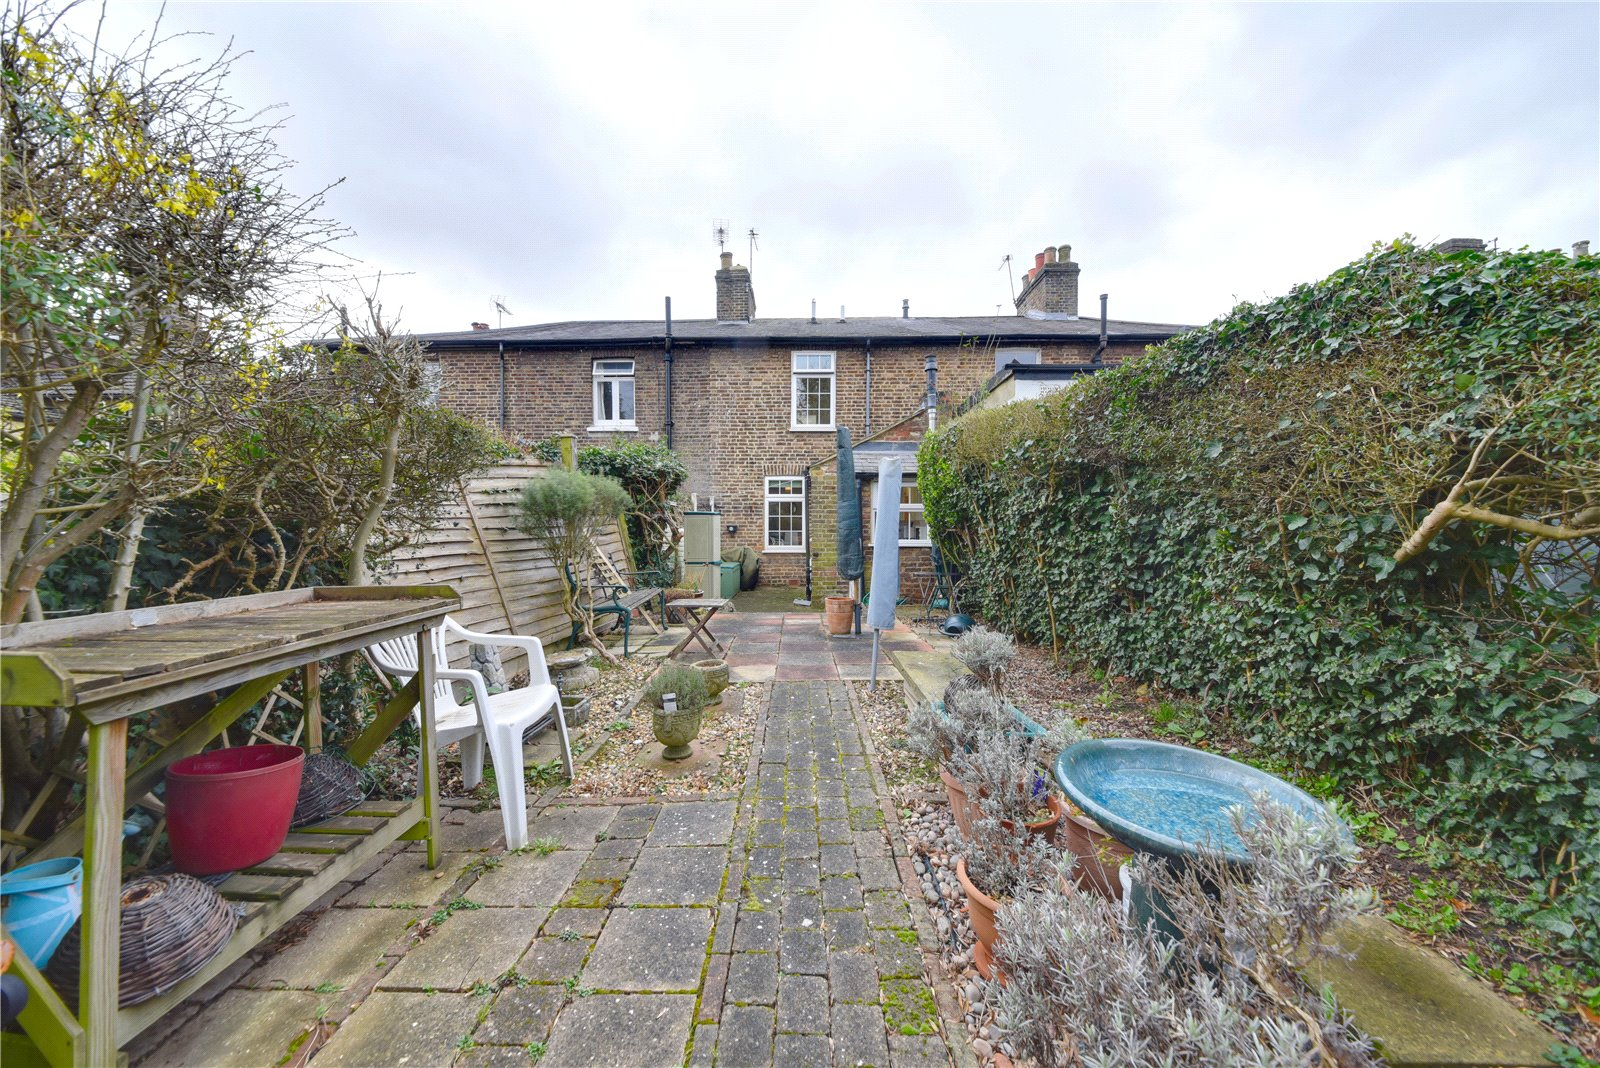 2 bed house for sale in London, N12 9JN 3